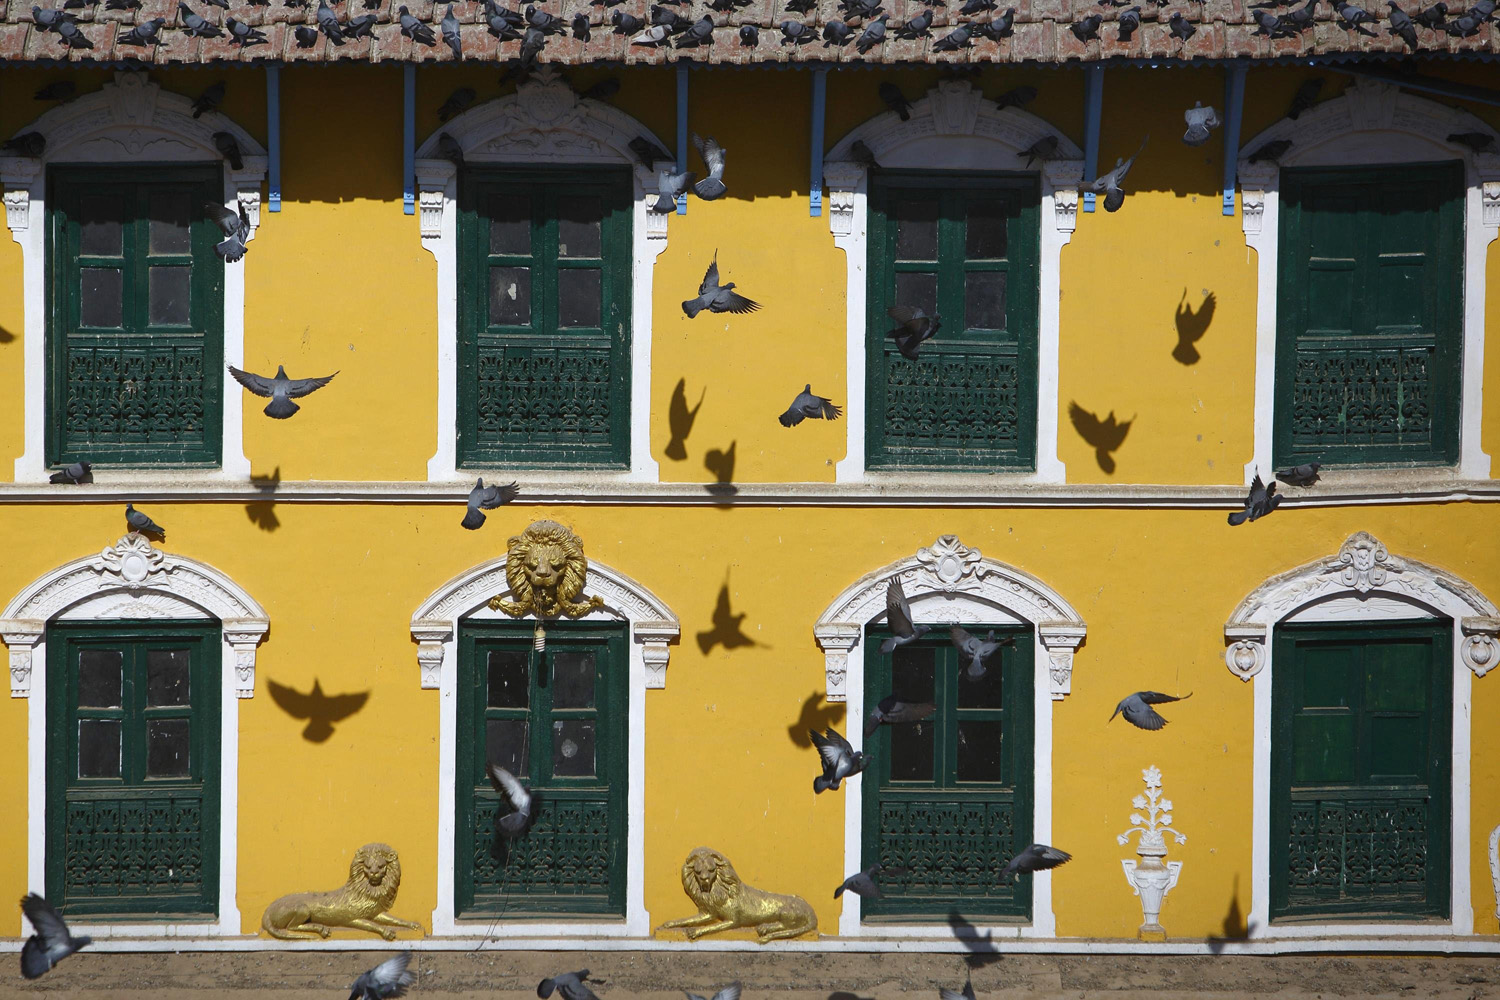 Jan. 1, 2014. Flying pigeons cast shadows on the wall an old house built in front of the Boudhanath Stupa in Kathmandu, Nepal.